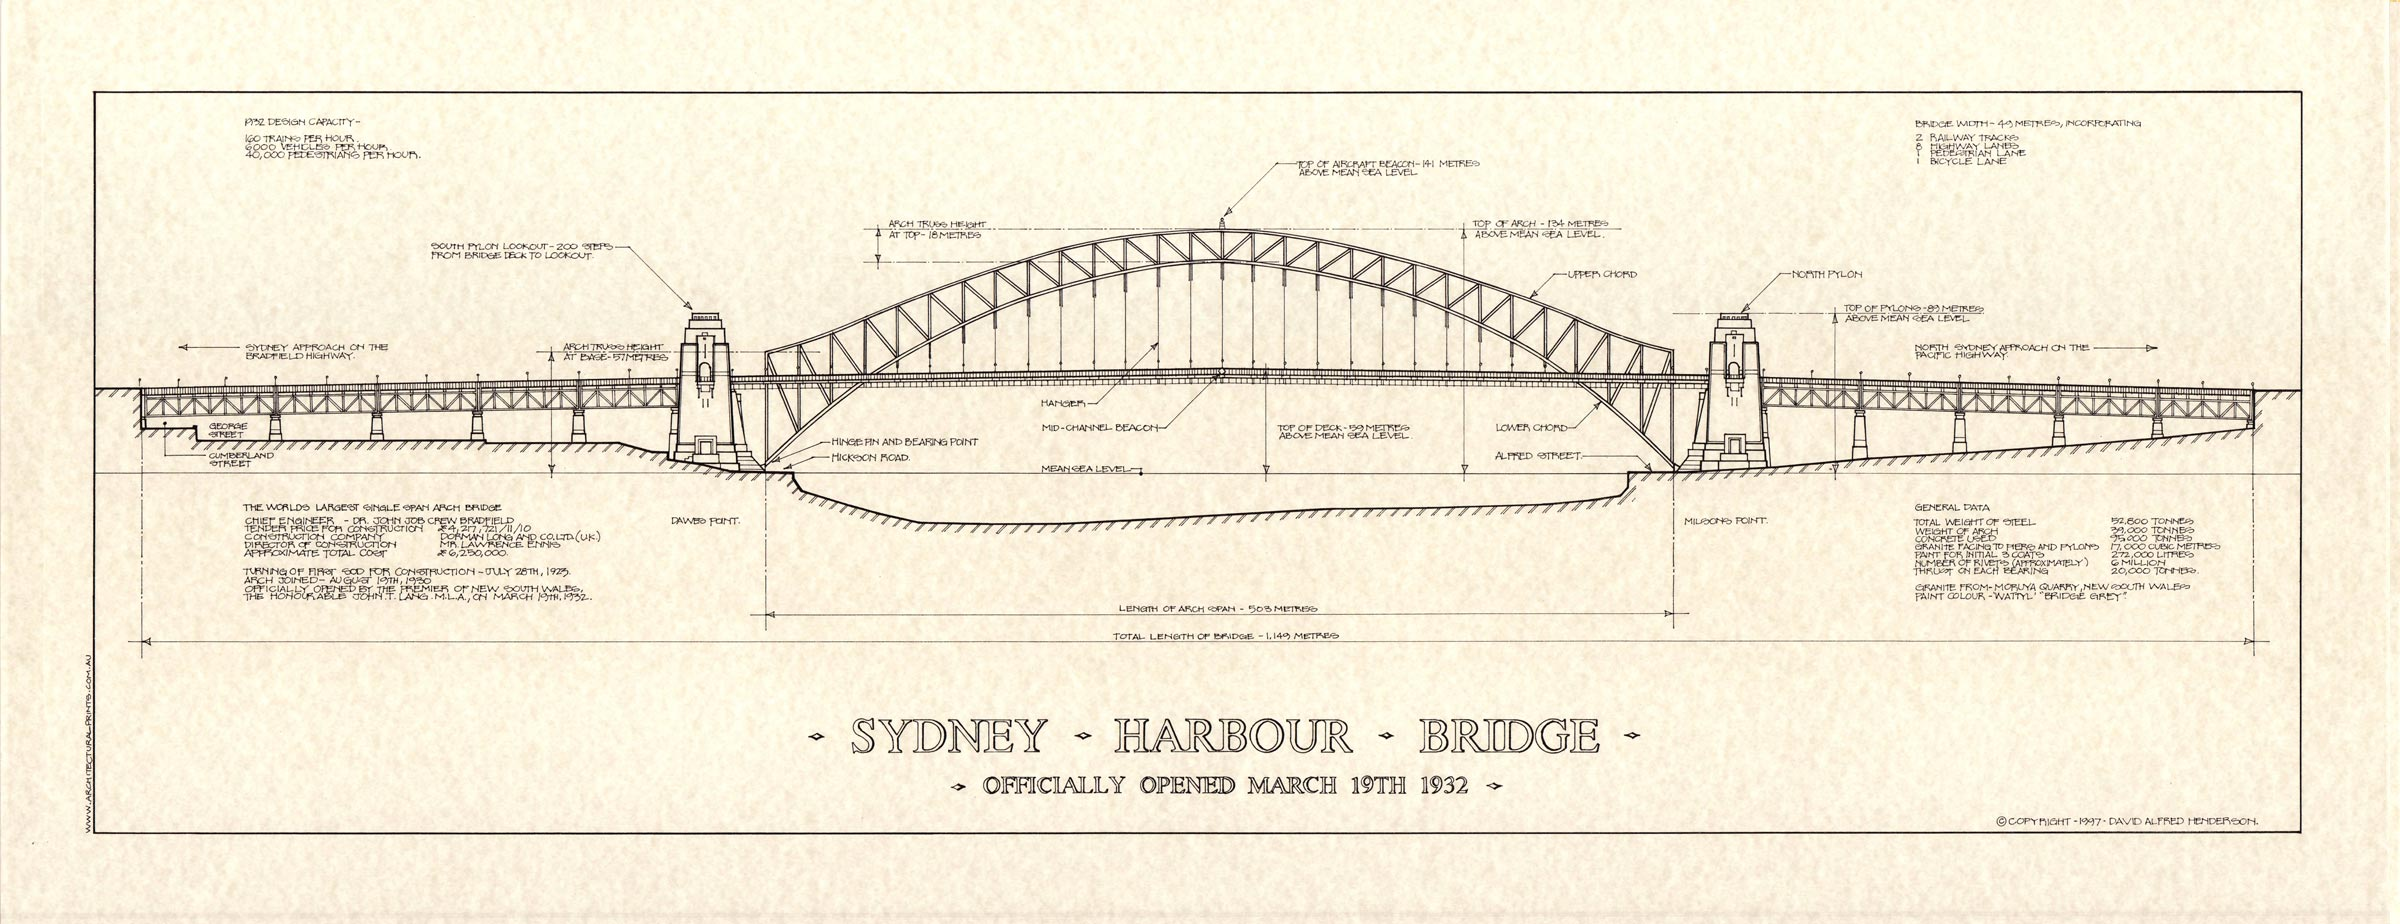 Sydney Harbour Bridge Print